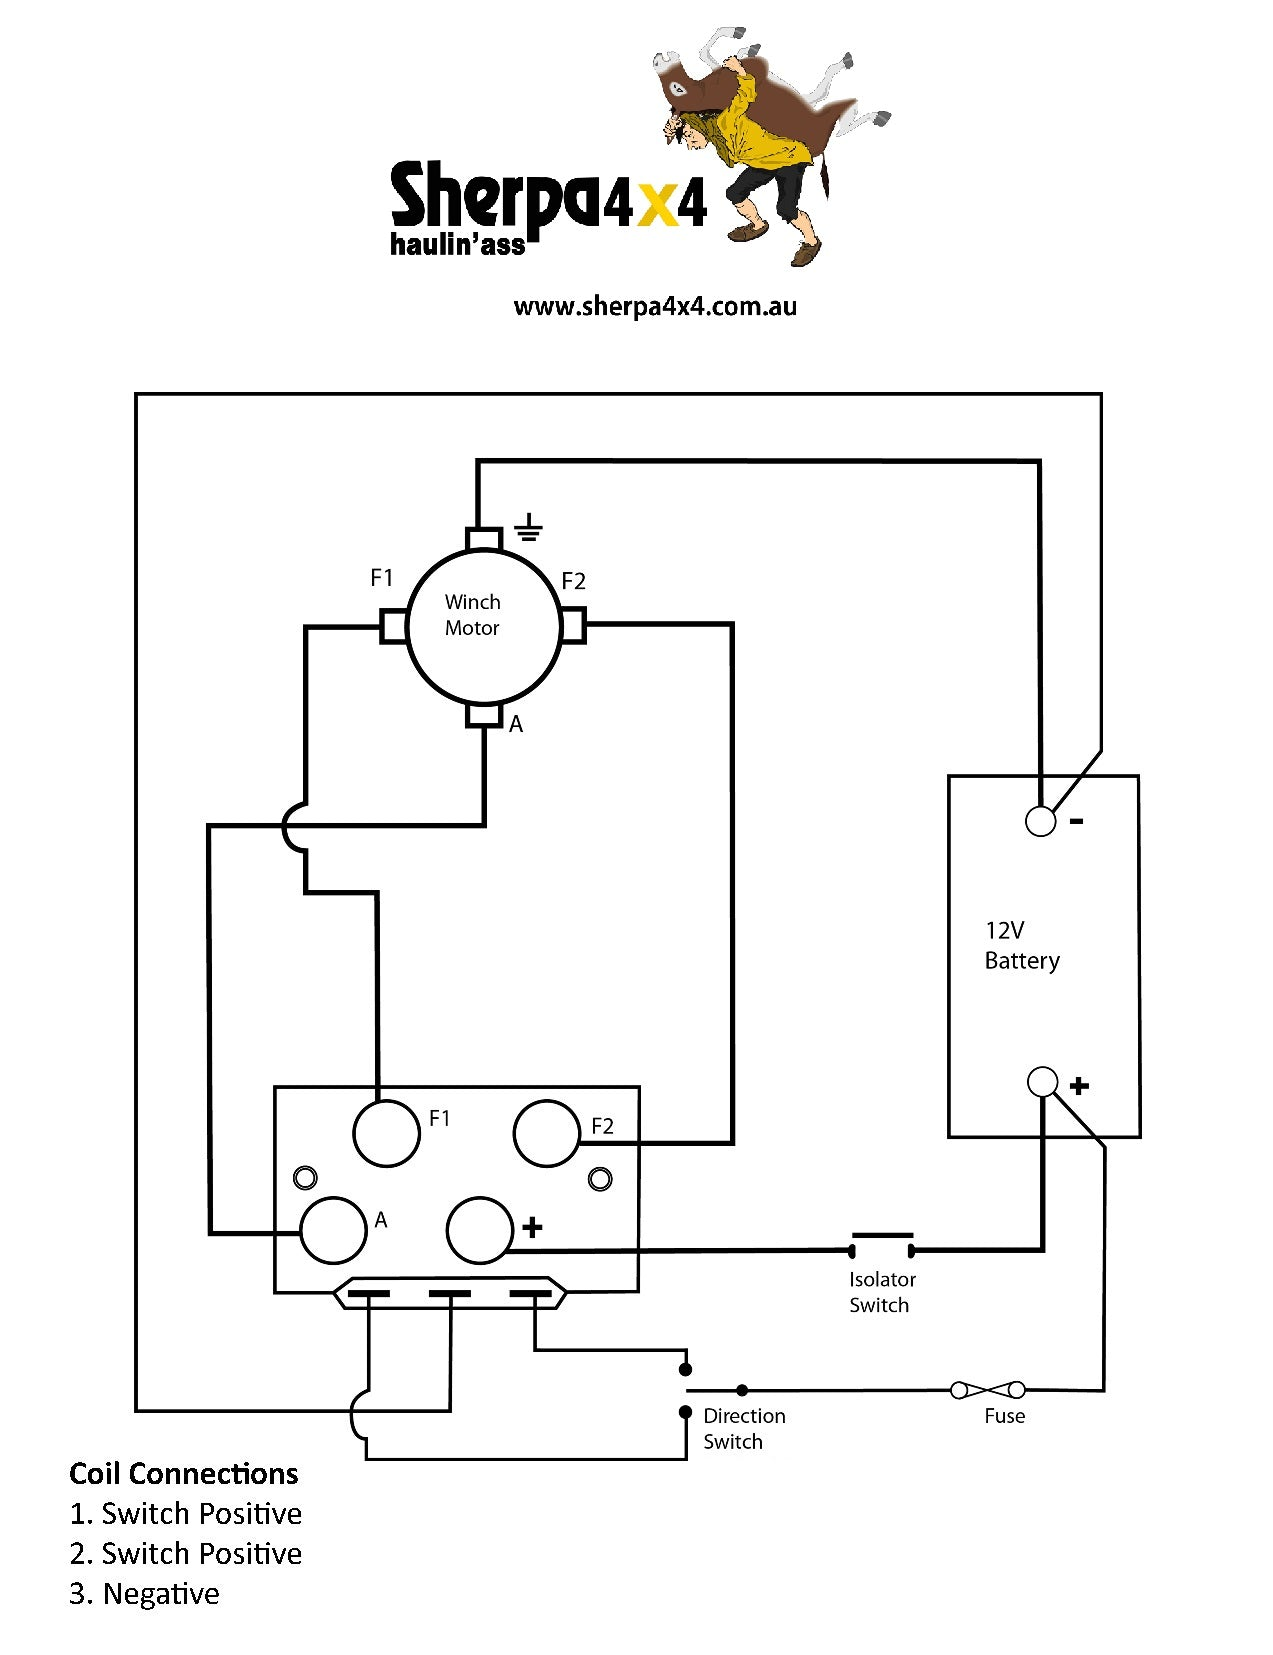 Sherpa_4x4_Winch_Wiring_Diagram?12240005484949772751 albright winch solenoid dc88p scintex australia warn winch wiring diagram solenoid at webbmarketing.co